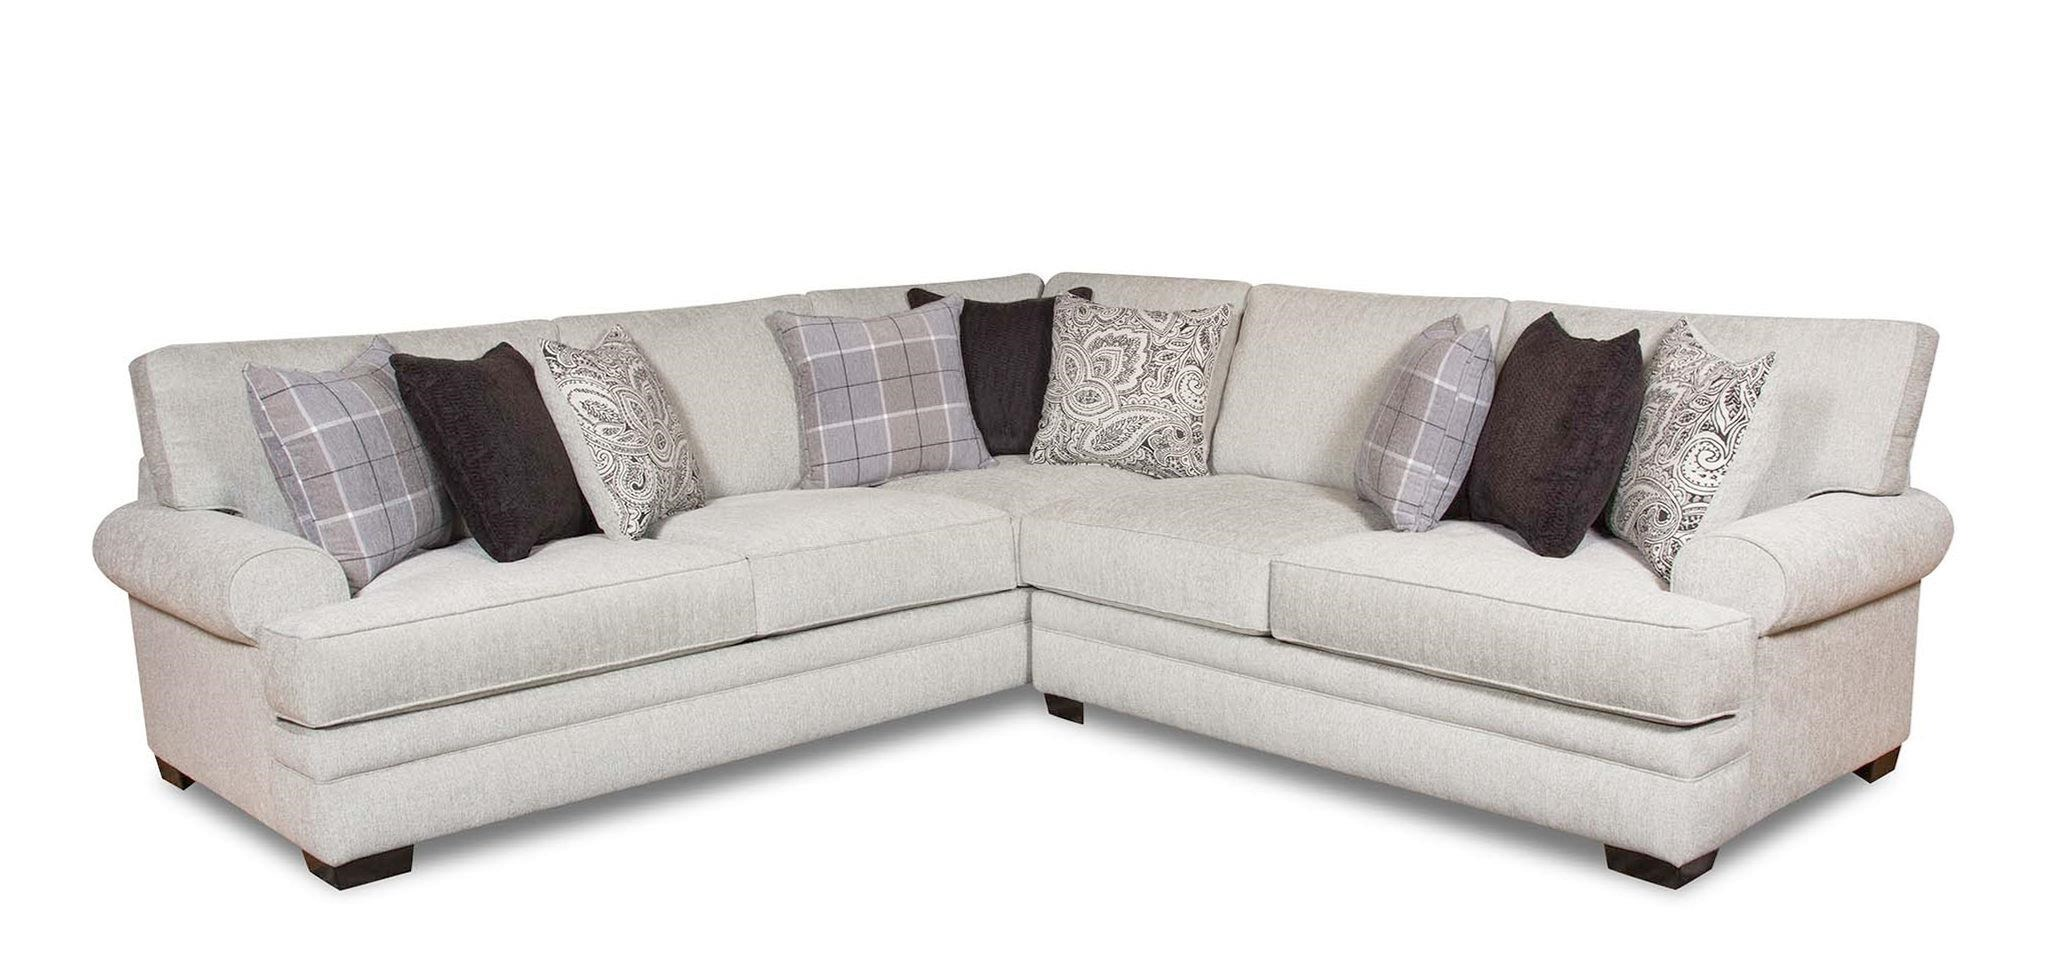 Corinthian 5900 2 Piece Transitional Sectional